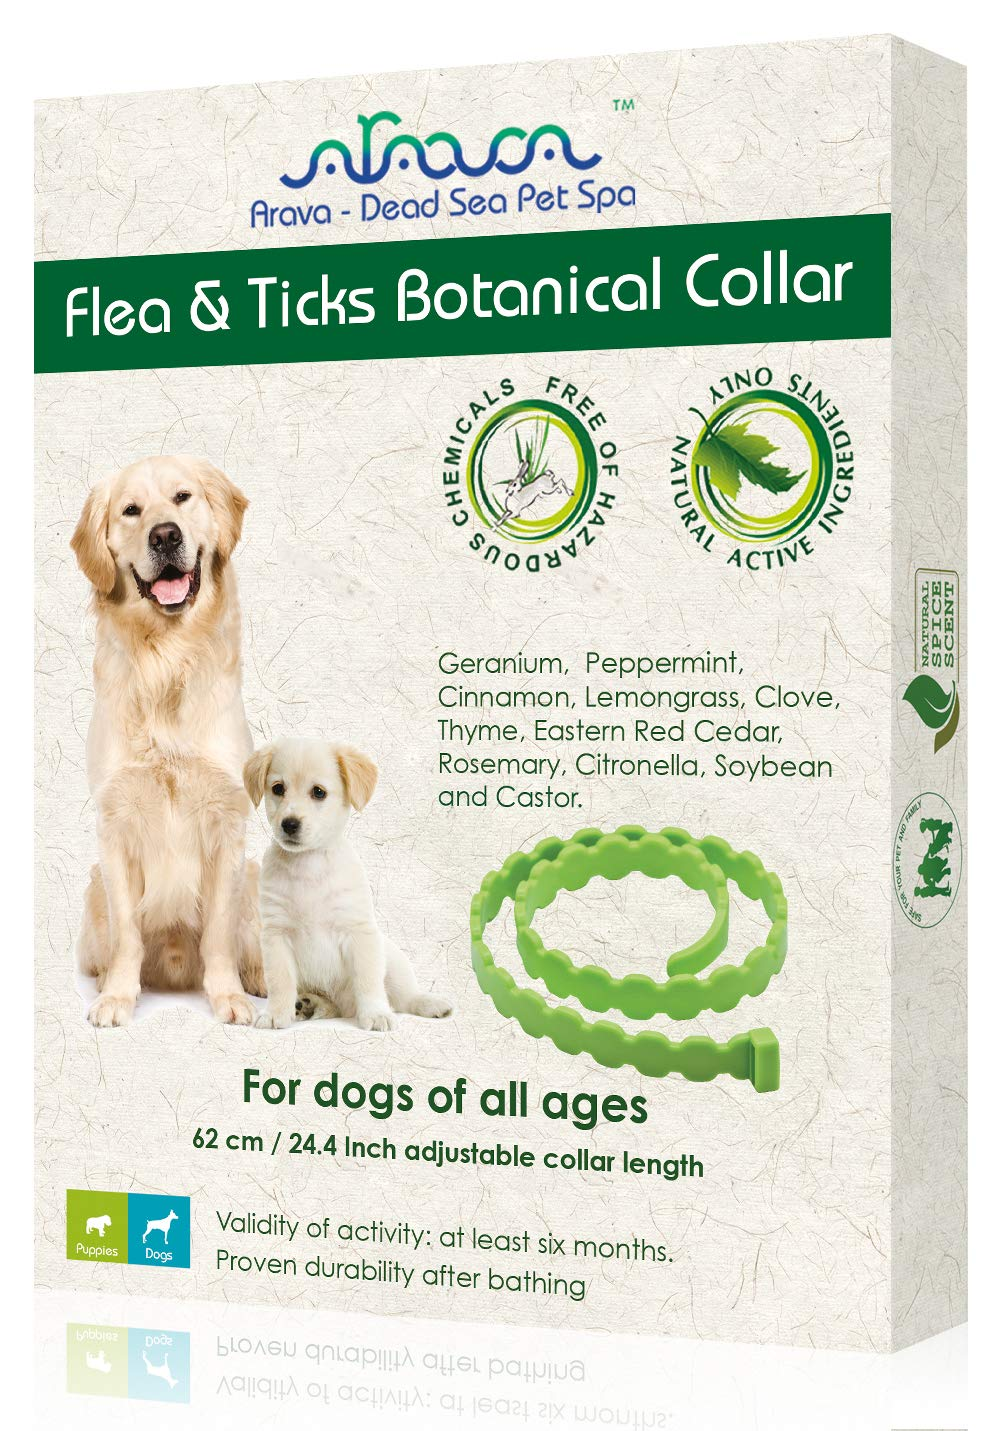 Arava Flea & Tick Prevention Collar - for Dogs & Puppies - Length-25'' - 11 Natural Active Ingredients - Safe for Babies & Pets - Safely Repels Pests - Enhanced Control & Defense - 6 Months Protection by Arava - Dead Sea Pet Spa